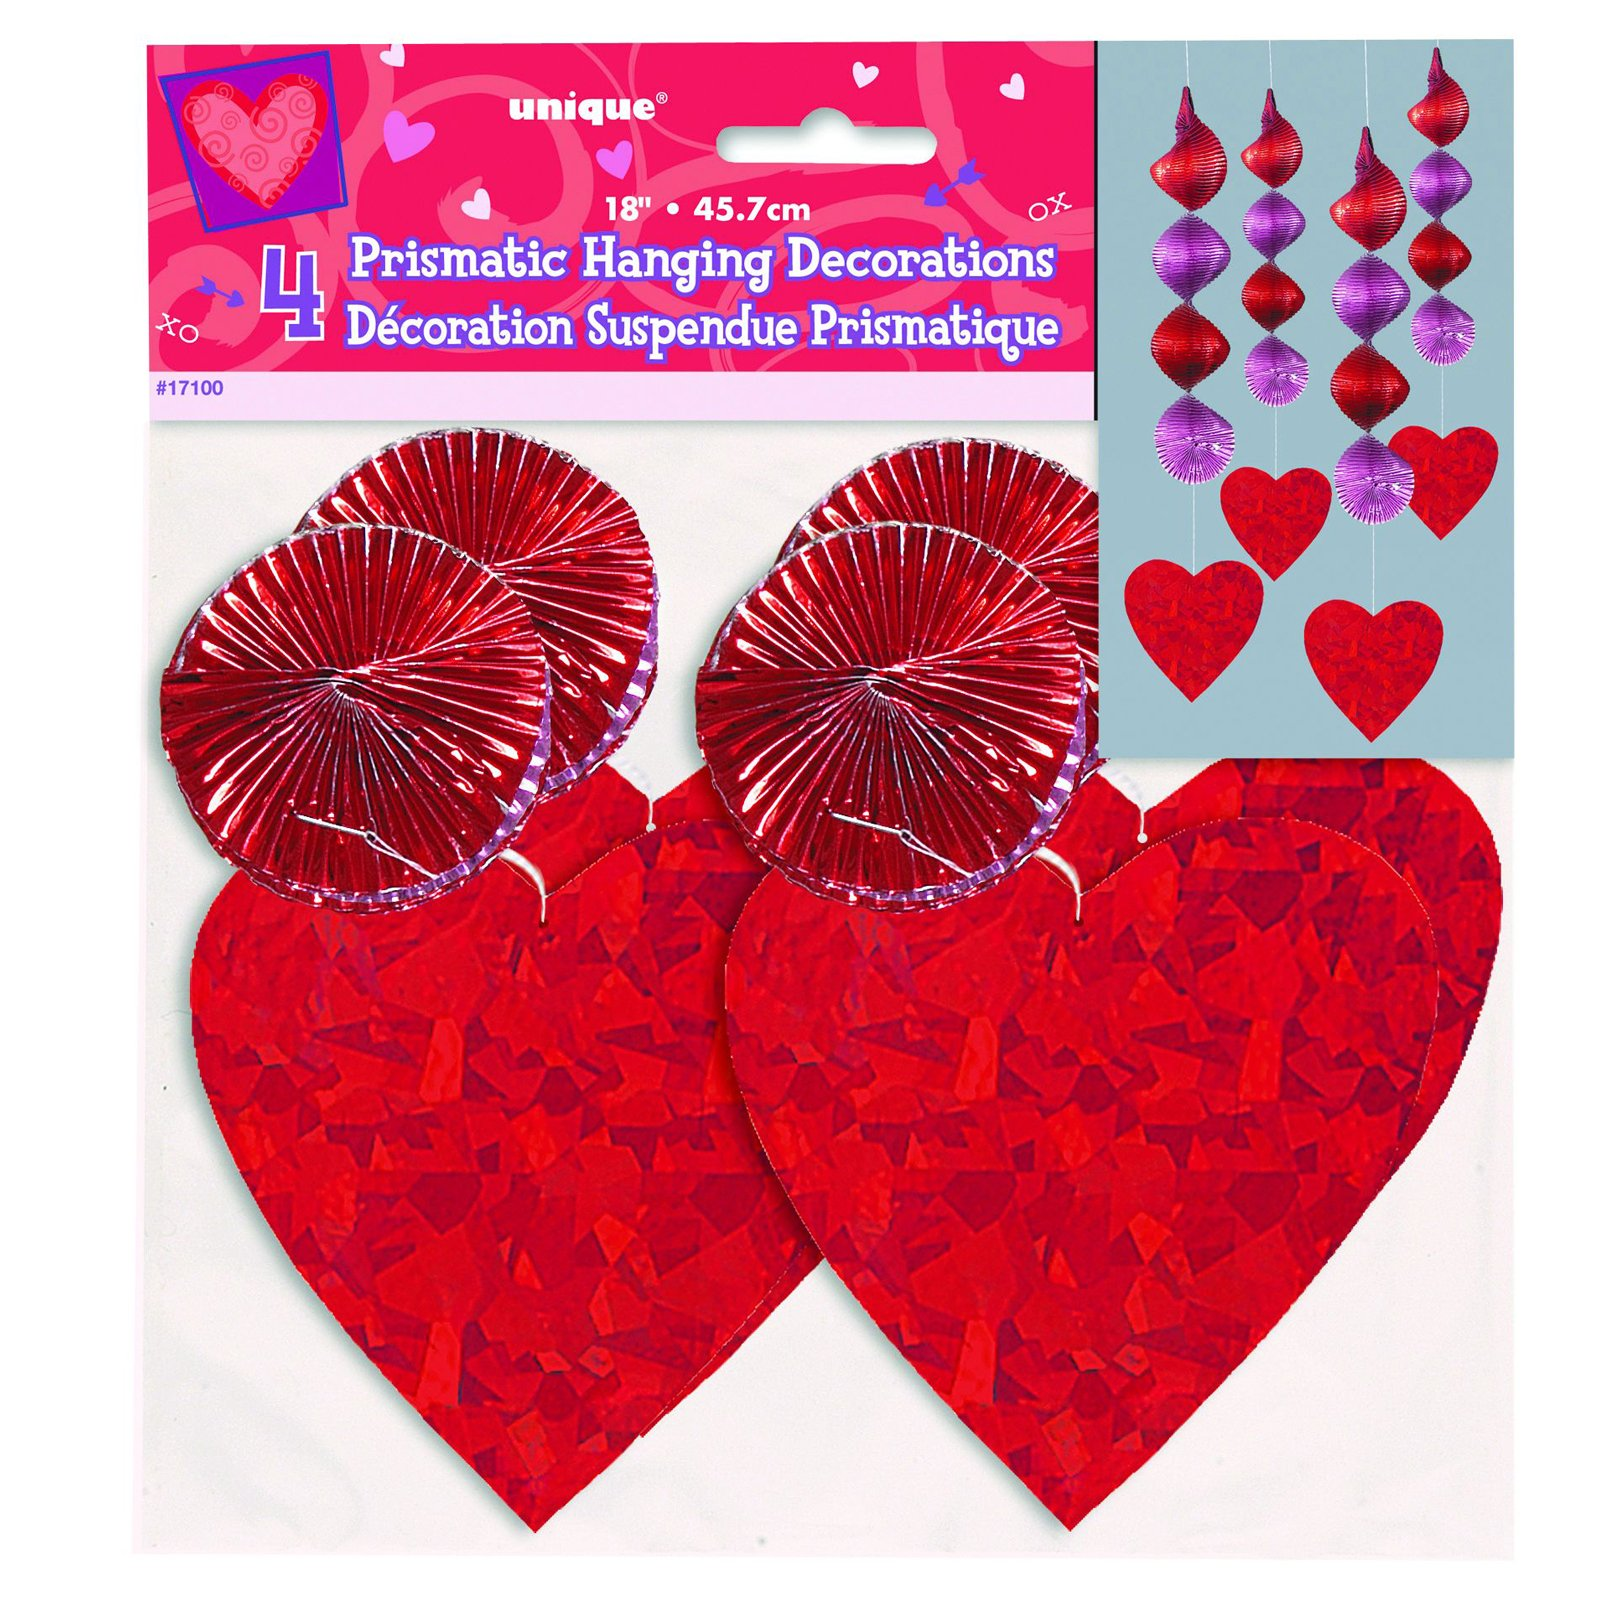 Heart Prismatic Hanging Decorations (4 count)